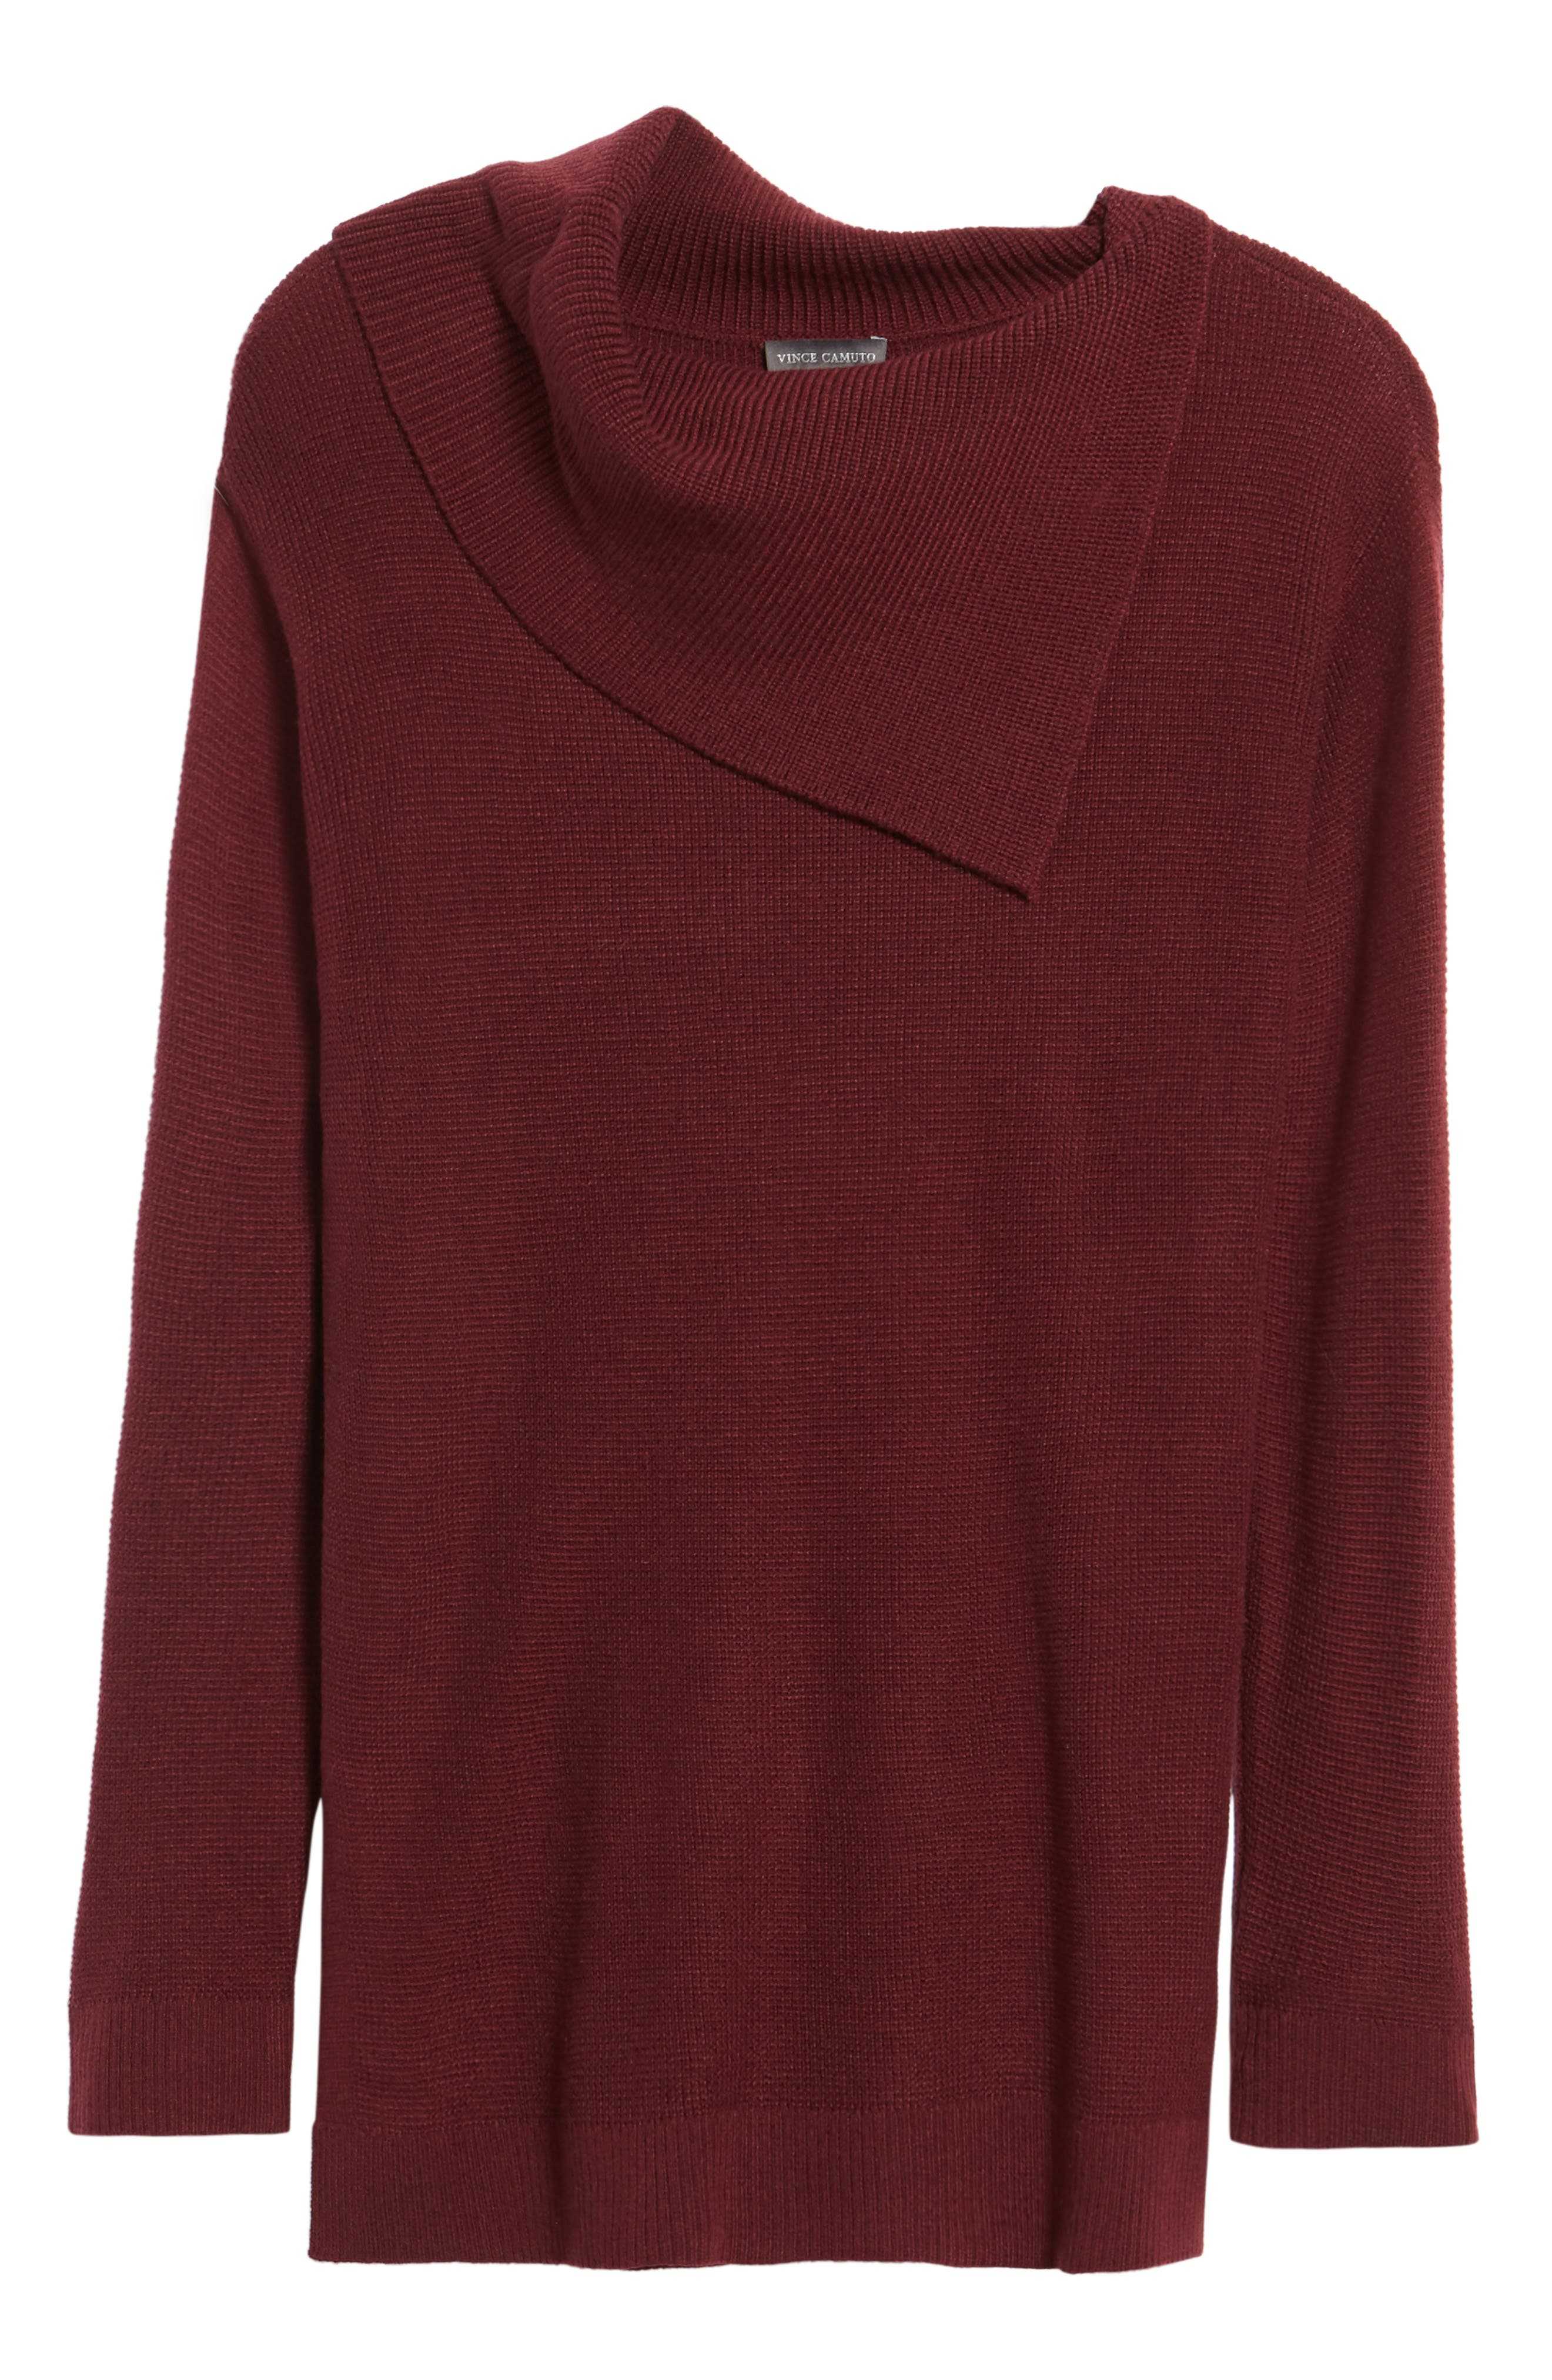 Vince Camuto Sweater (Regular & Petite)